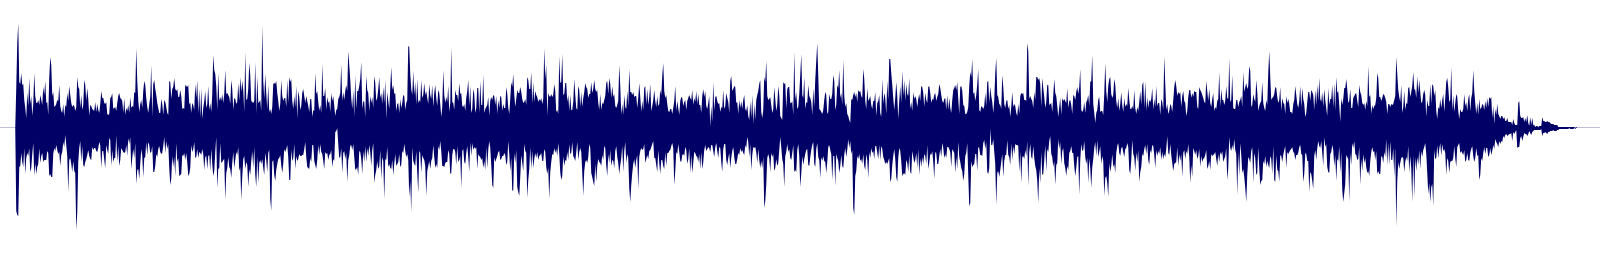 waveform of track #91309